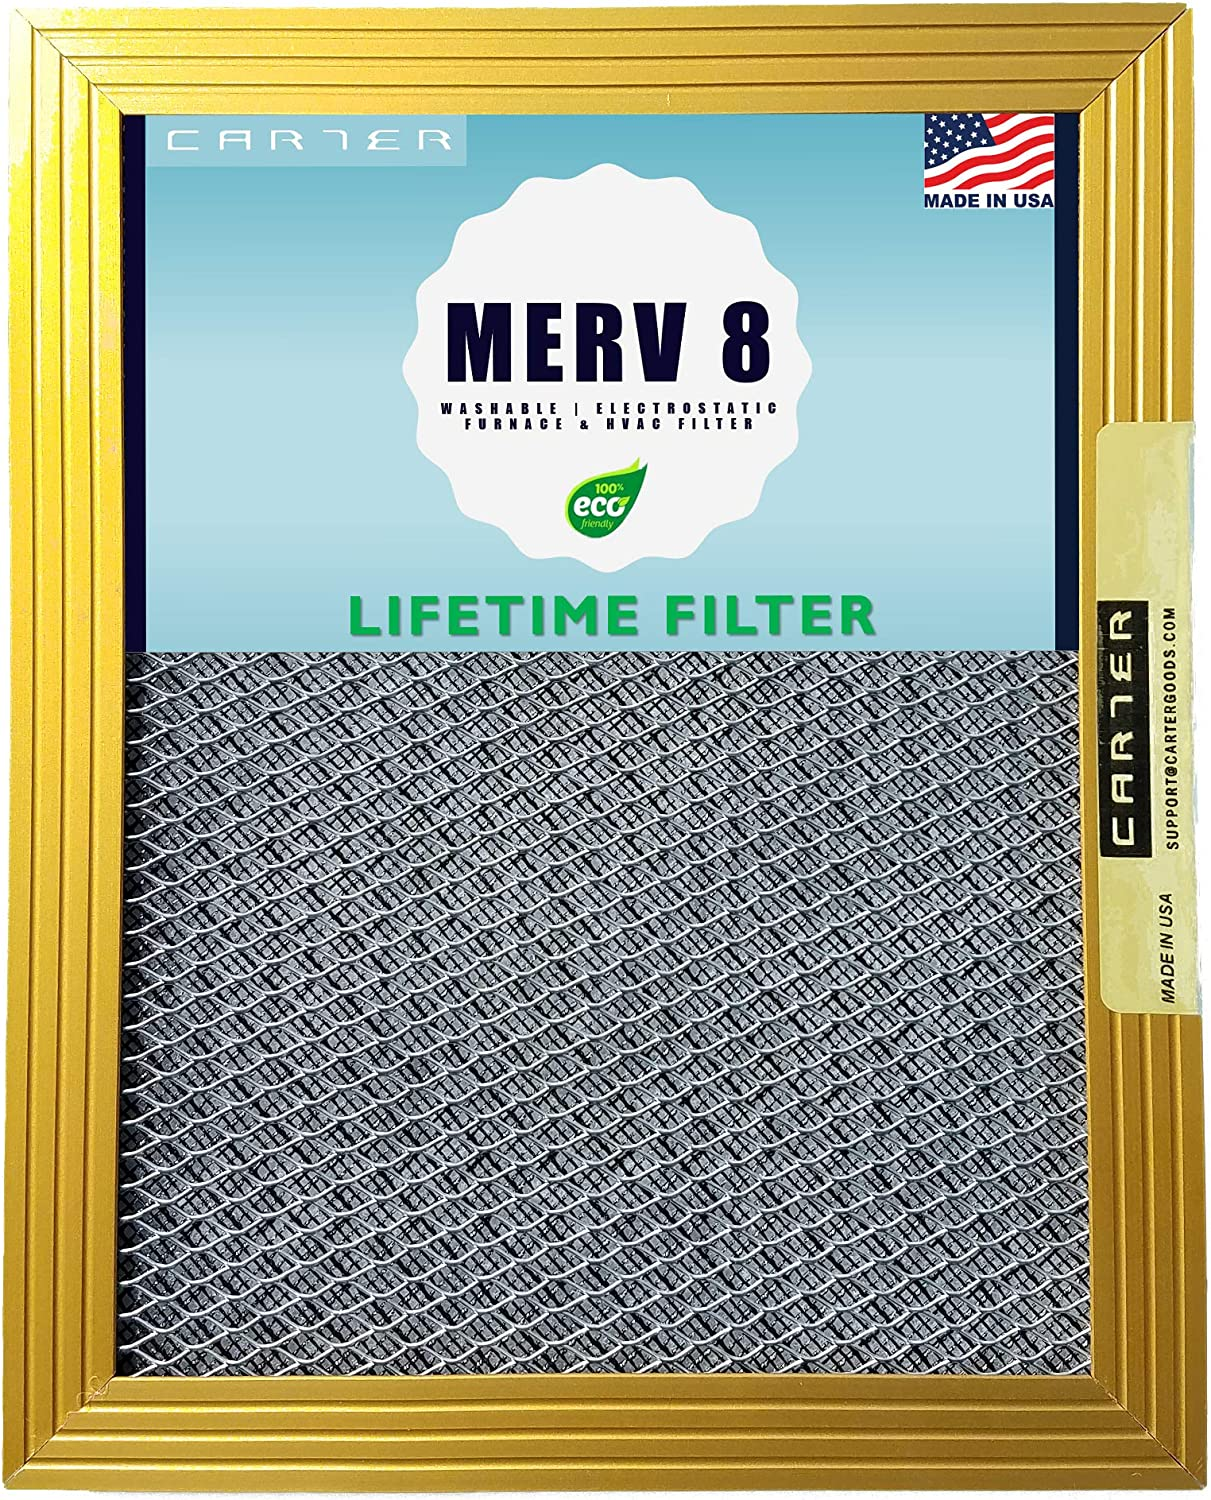 20x20x1 CARTER | MERV 8 | Lifetime HVAC & Furnace Air Filter | Washable Electrostatic | High Dust Holding Capacity | Never buy another filter